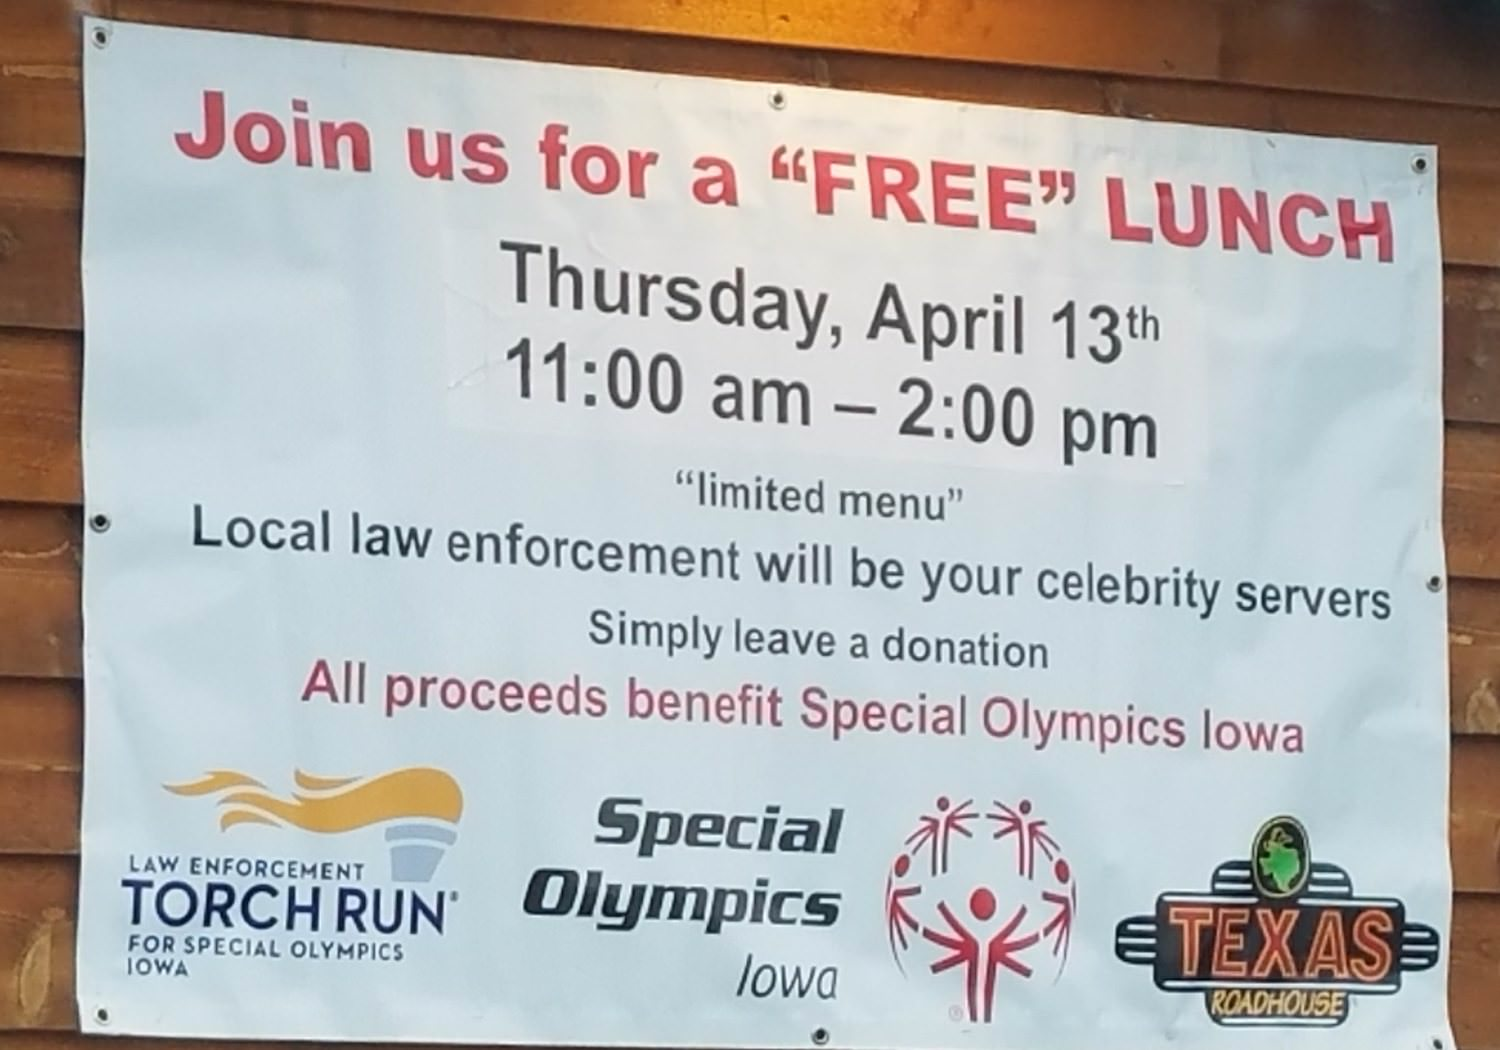 Free Lunch served by local law enforcement at Texas Road House